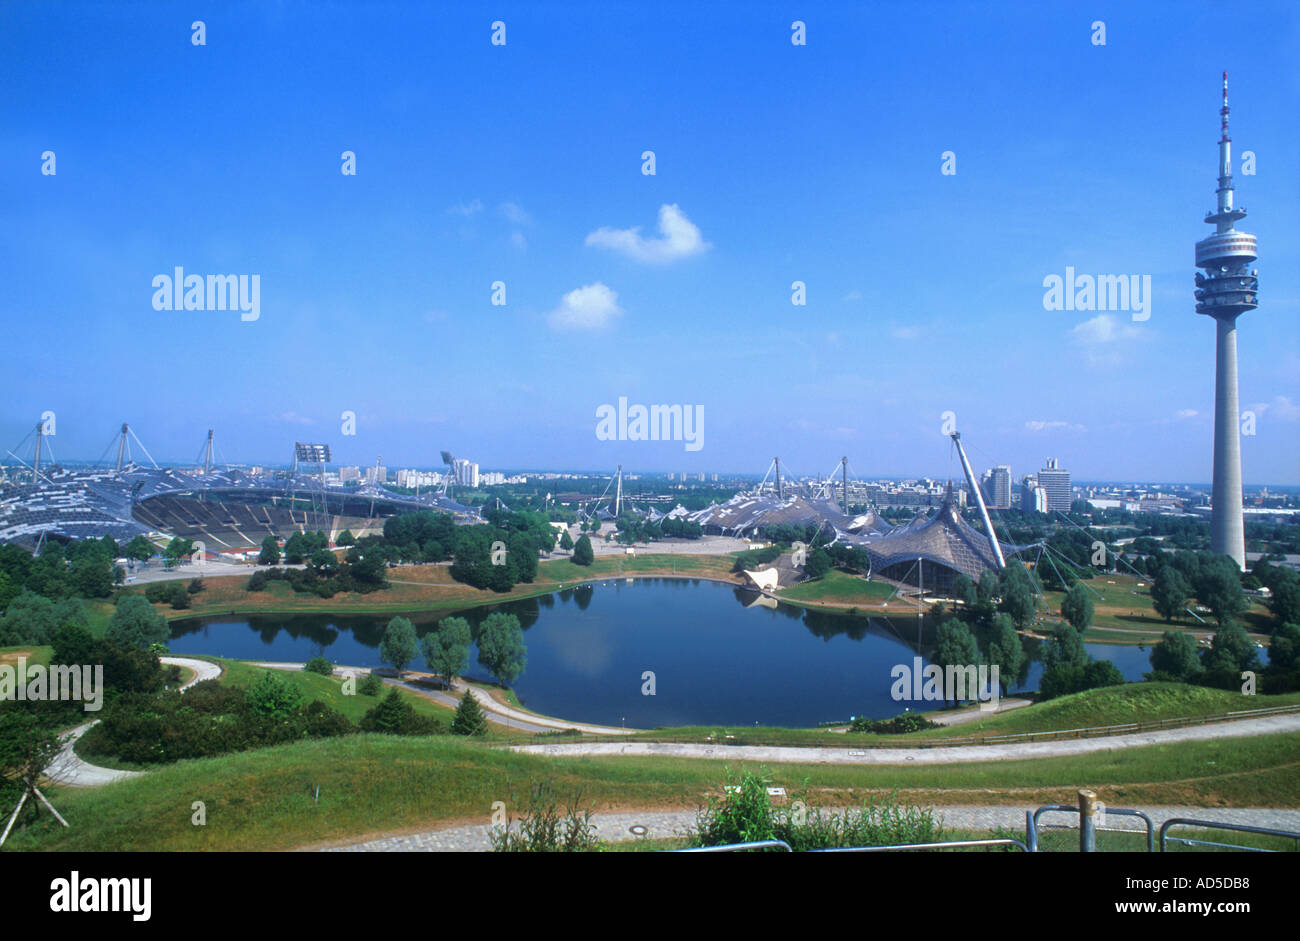 Panorama view of the Olympic Parc with Olympic Stadium lake Television Tower Munich Bavaria Germany Europe  - Stock Image